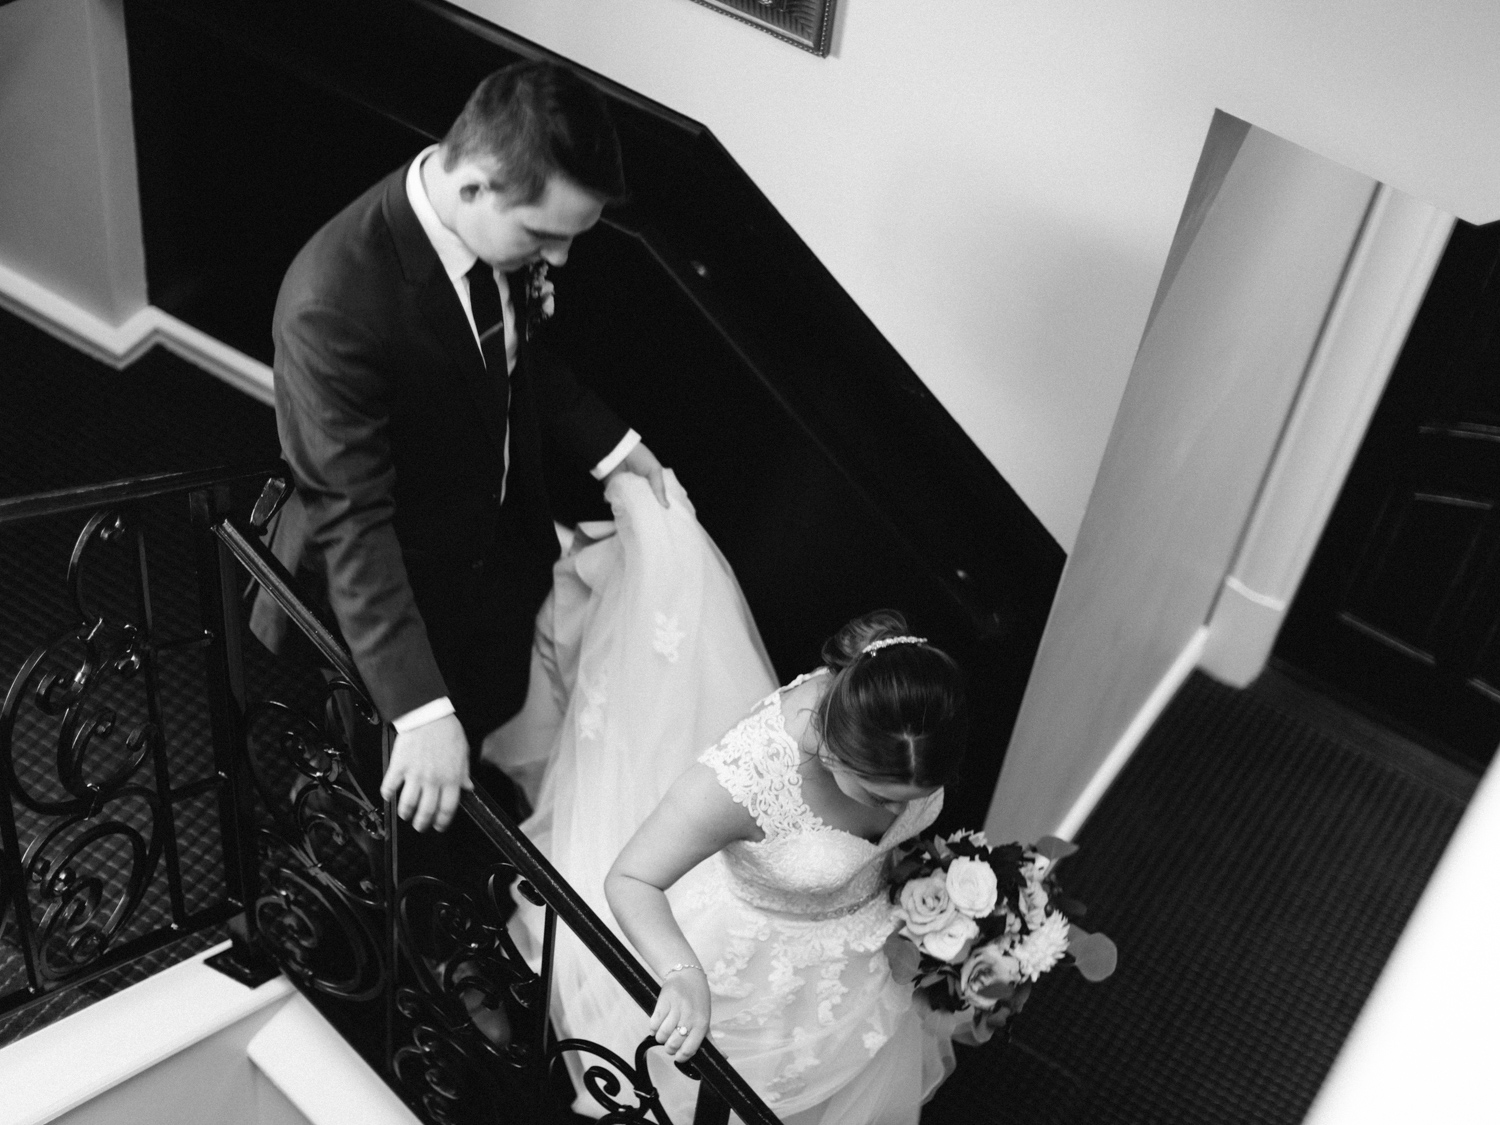 A groom carries his bride's dress as they walk down stairs at Loft 310